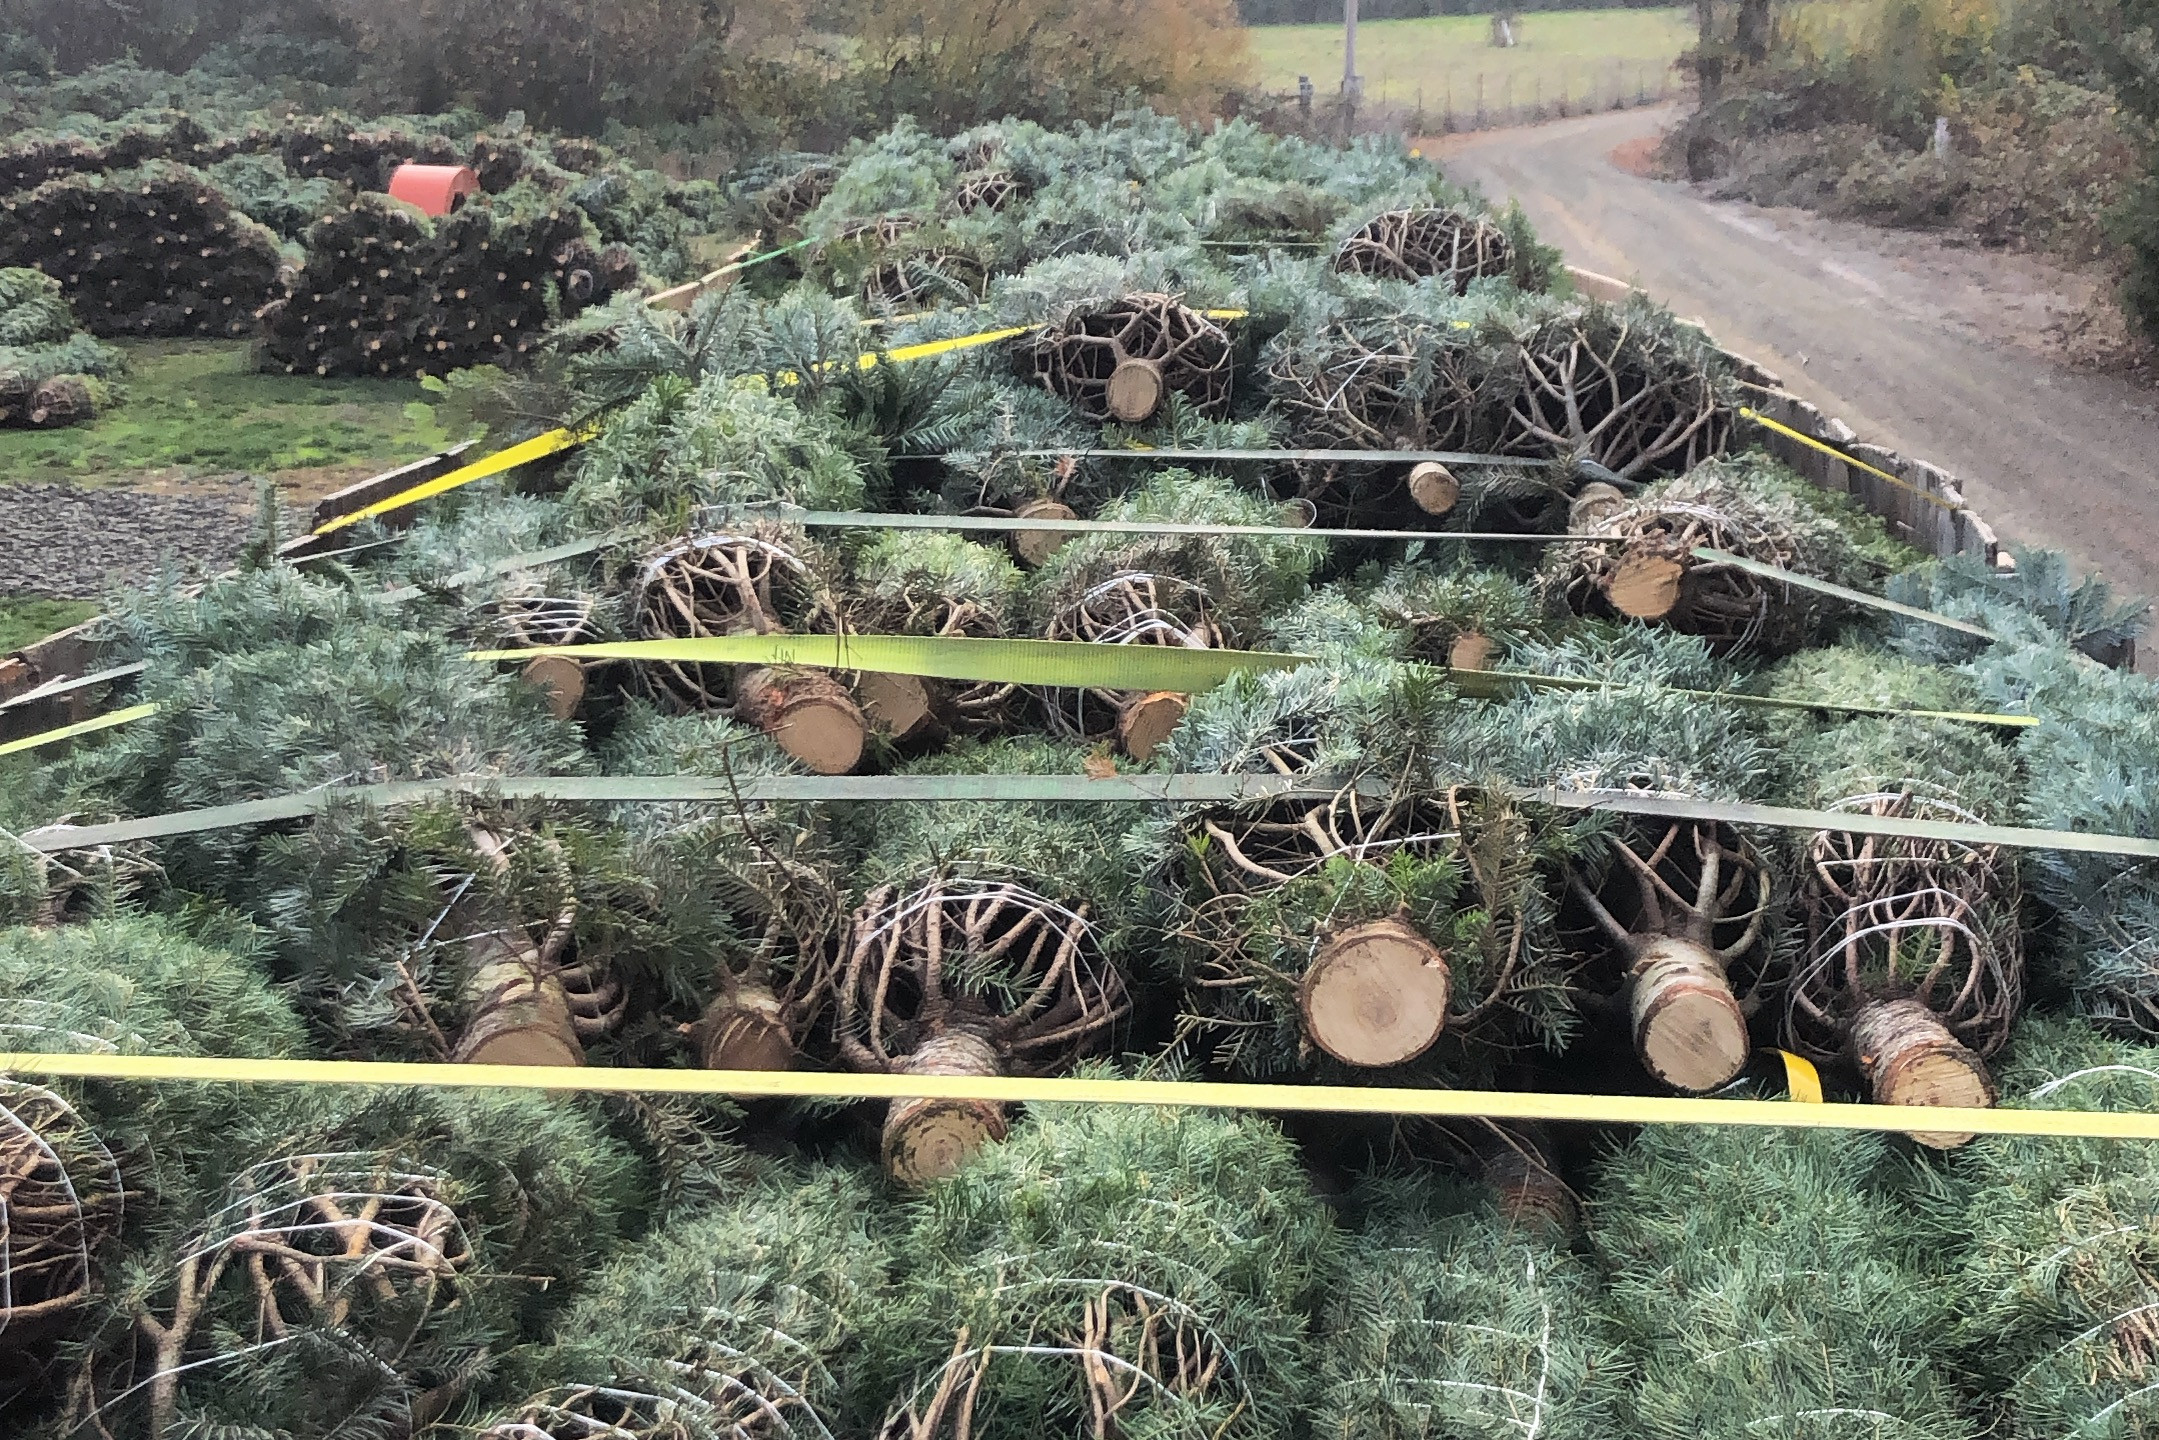 Christmas trees loaded and strapped in for the journey home